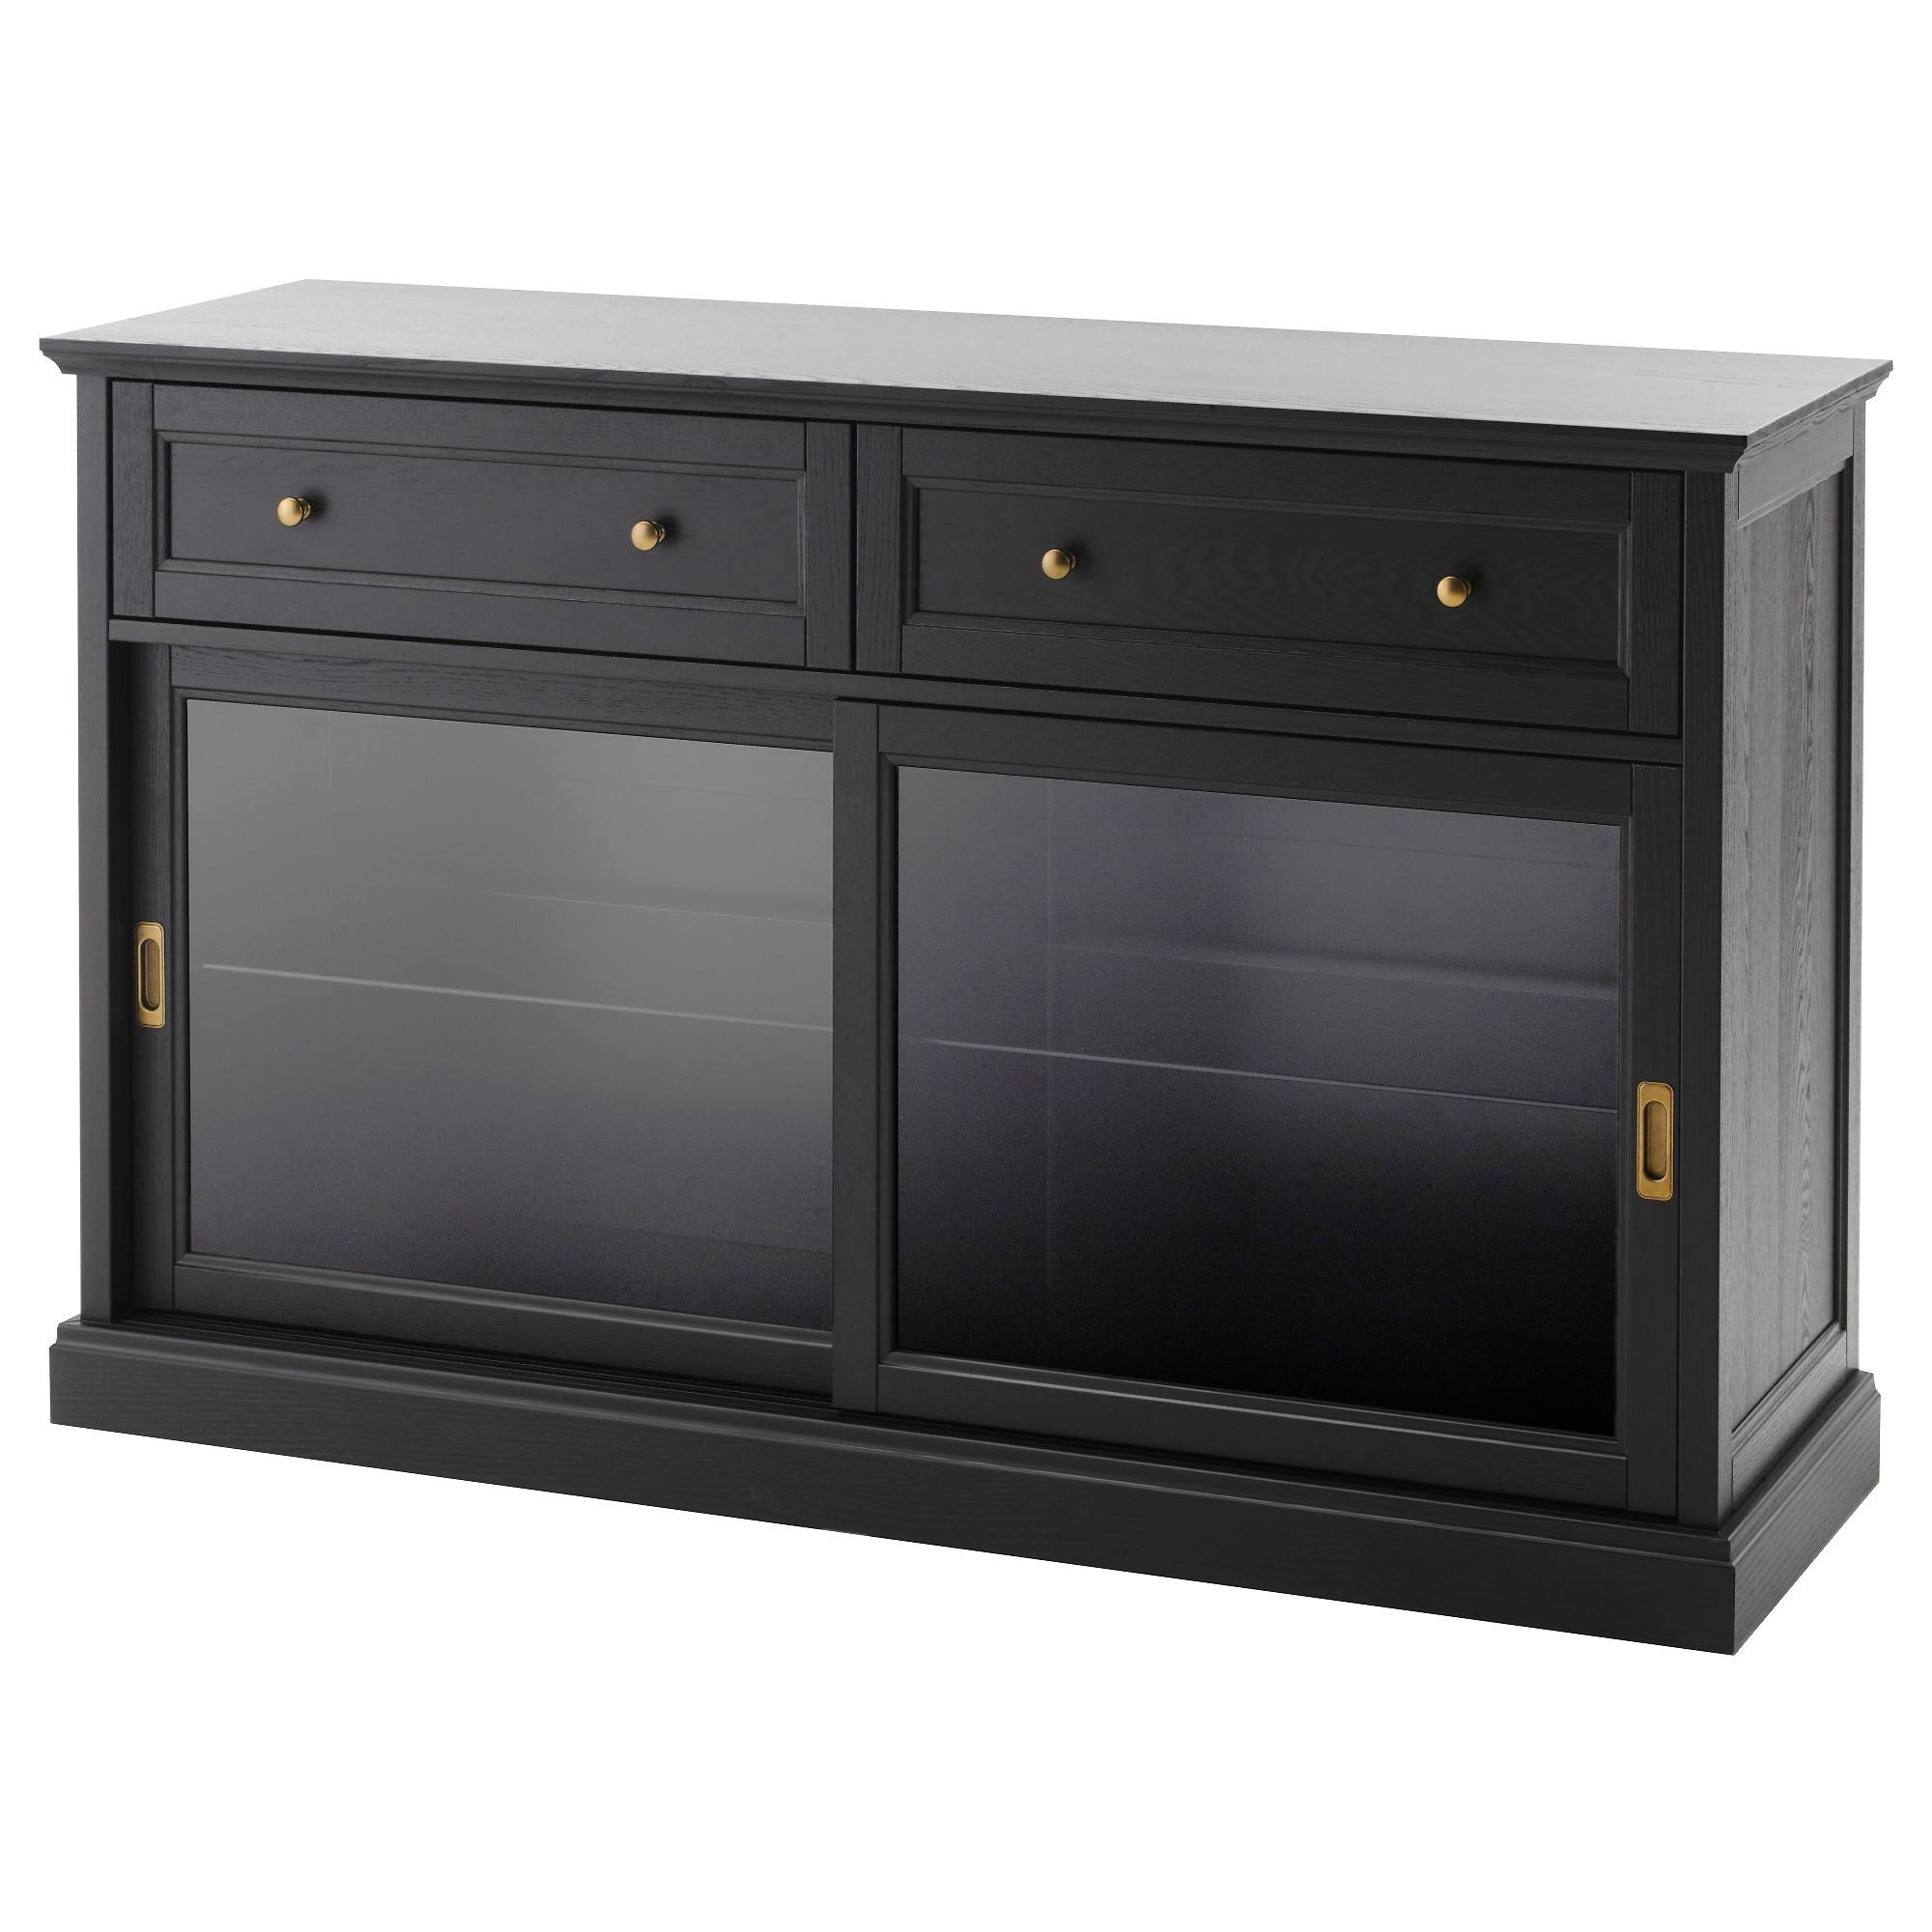 Malsjö Sideboard Basic Unit Black Stained 145X92 Cm - Ikea for Small Black Sideboards (Image 11 of 30)